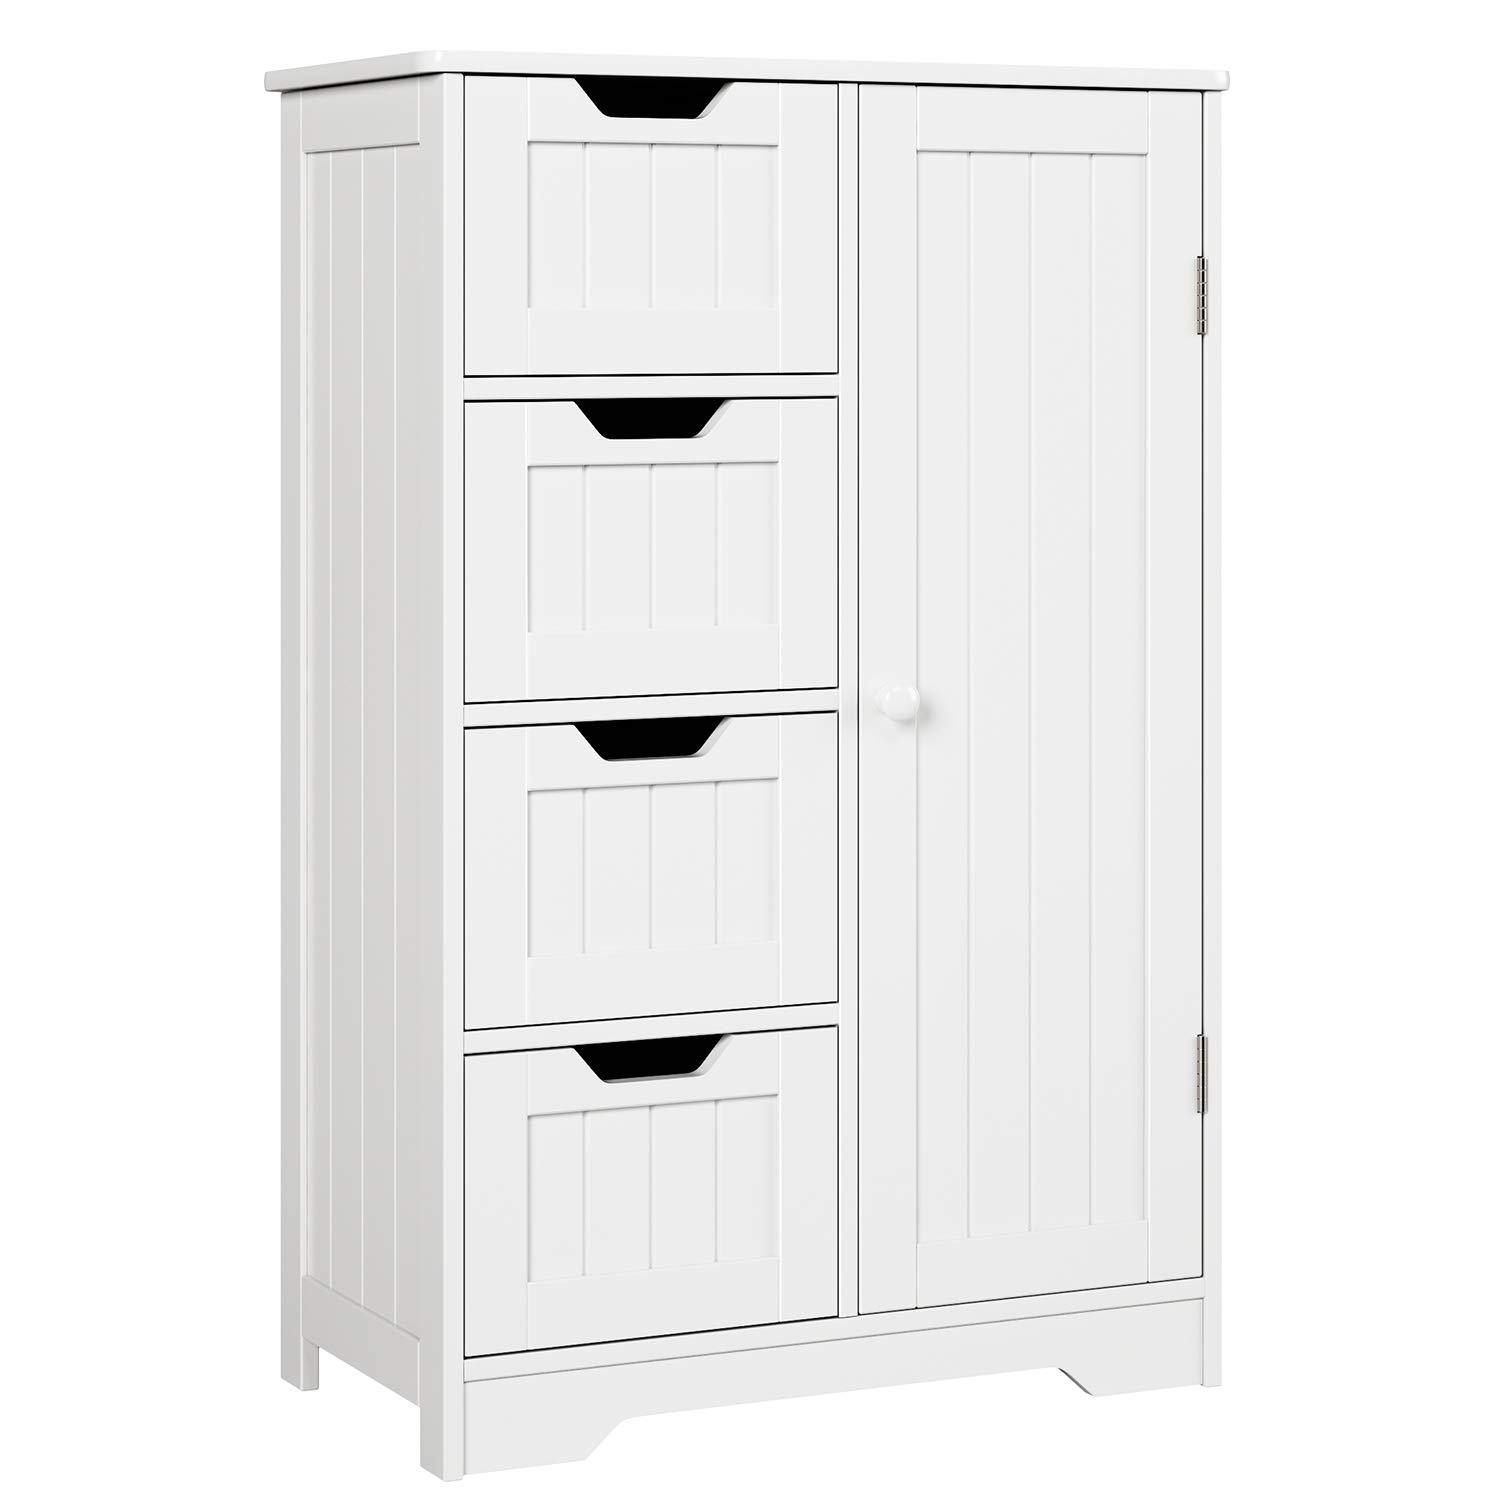 HOMFA Bathroom Floor Cabinet, Wooden Side Storage Organizer Cabinet with 4 Drawer and 1 Cupboard, Freestanding Unit for Better Homes and Gardens Office by Homfa